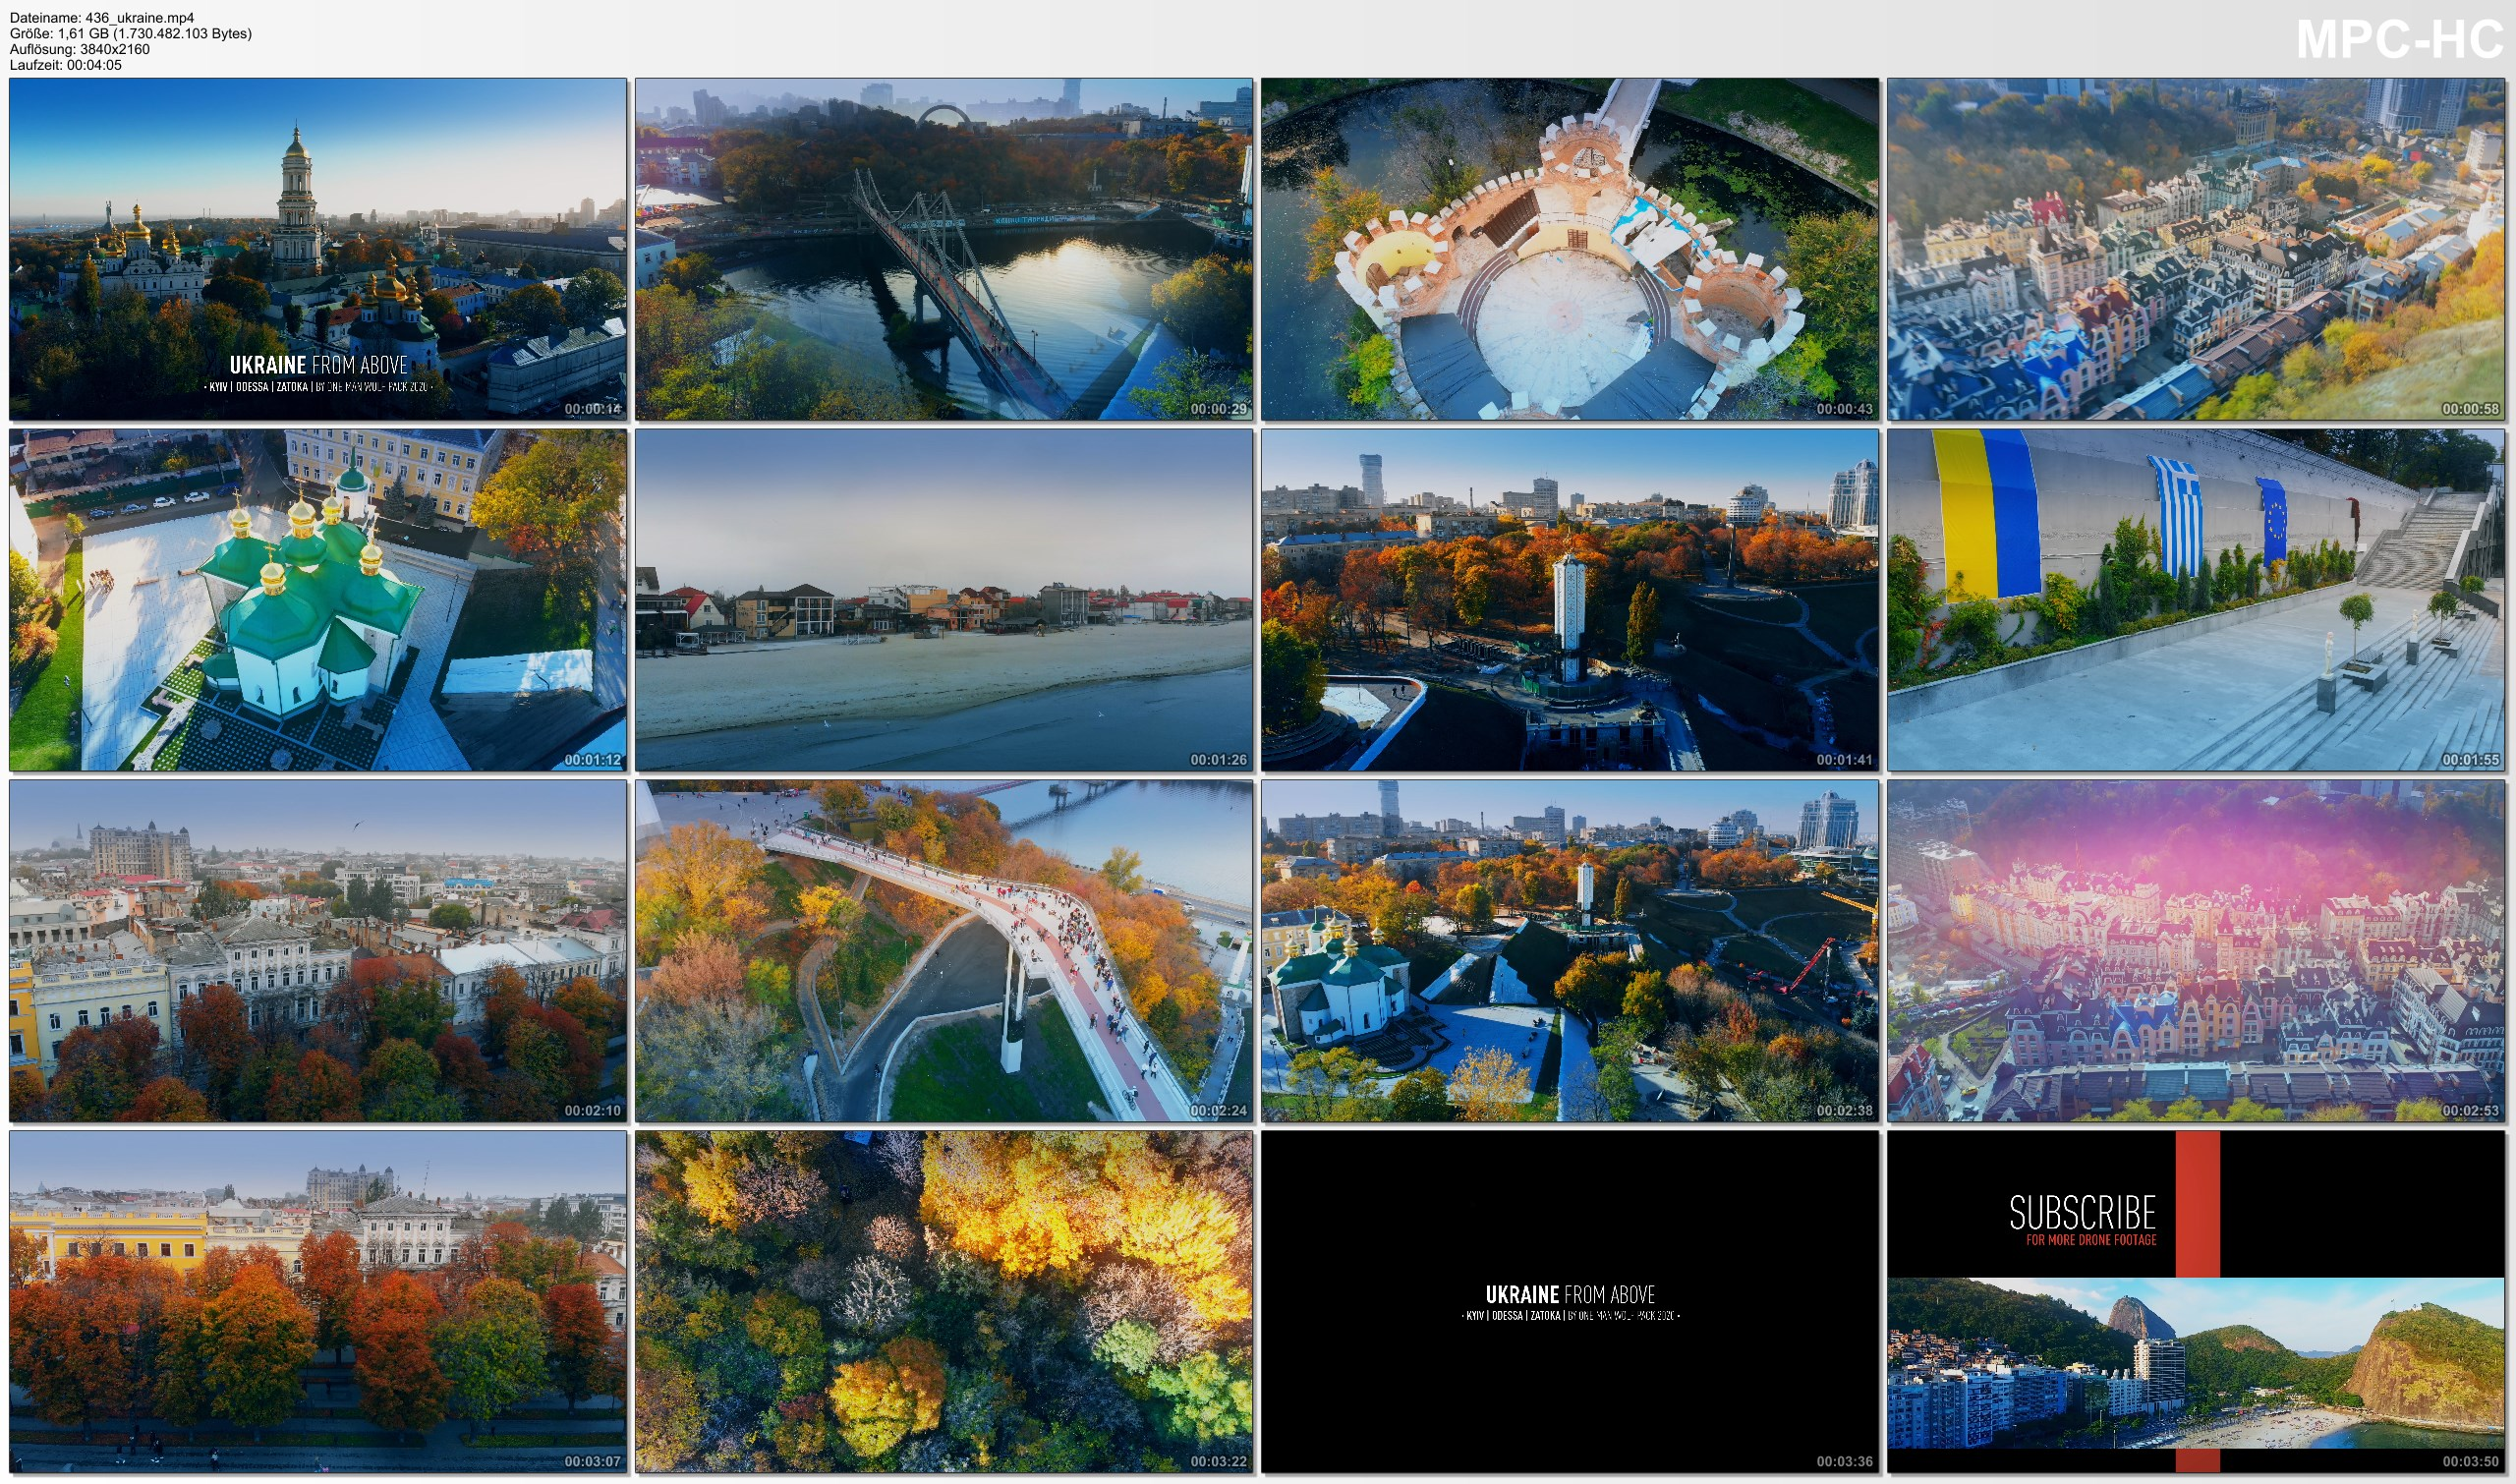 Drone Pictures from Video 【4K】UKRAINE from Above 2020 | Украина, Киев Kyiv | Cinematic Aerial Film